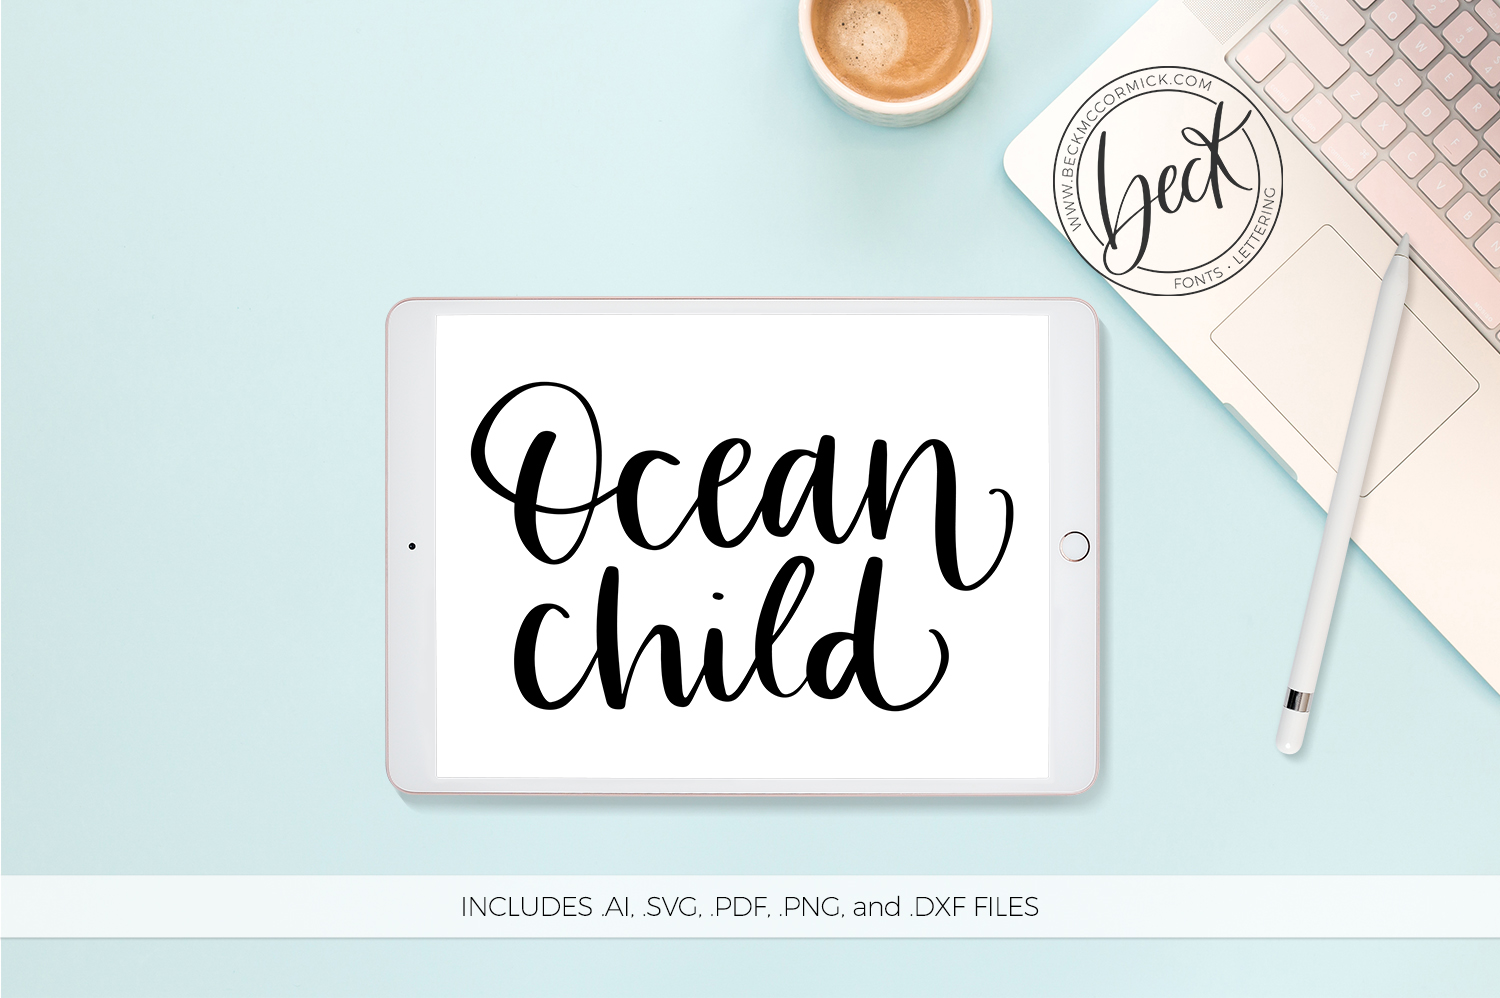 Download Free Ocean Child Graphic By Beckmccormick Creative Fabrica for Cricut Explore, Silhouette and other cutting machines.